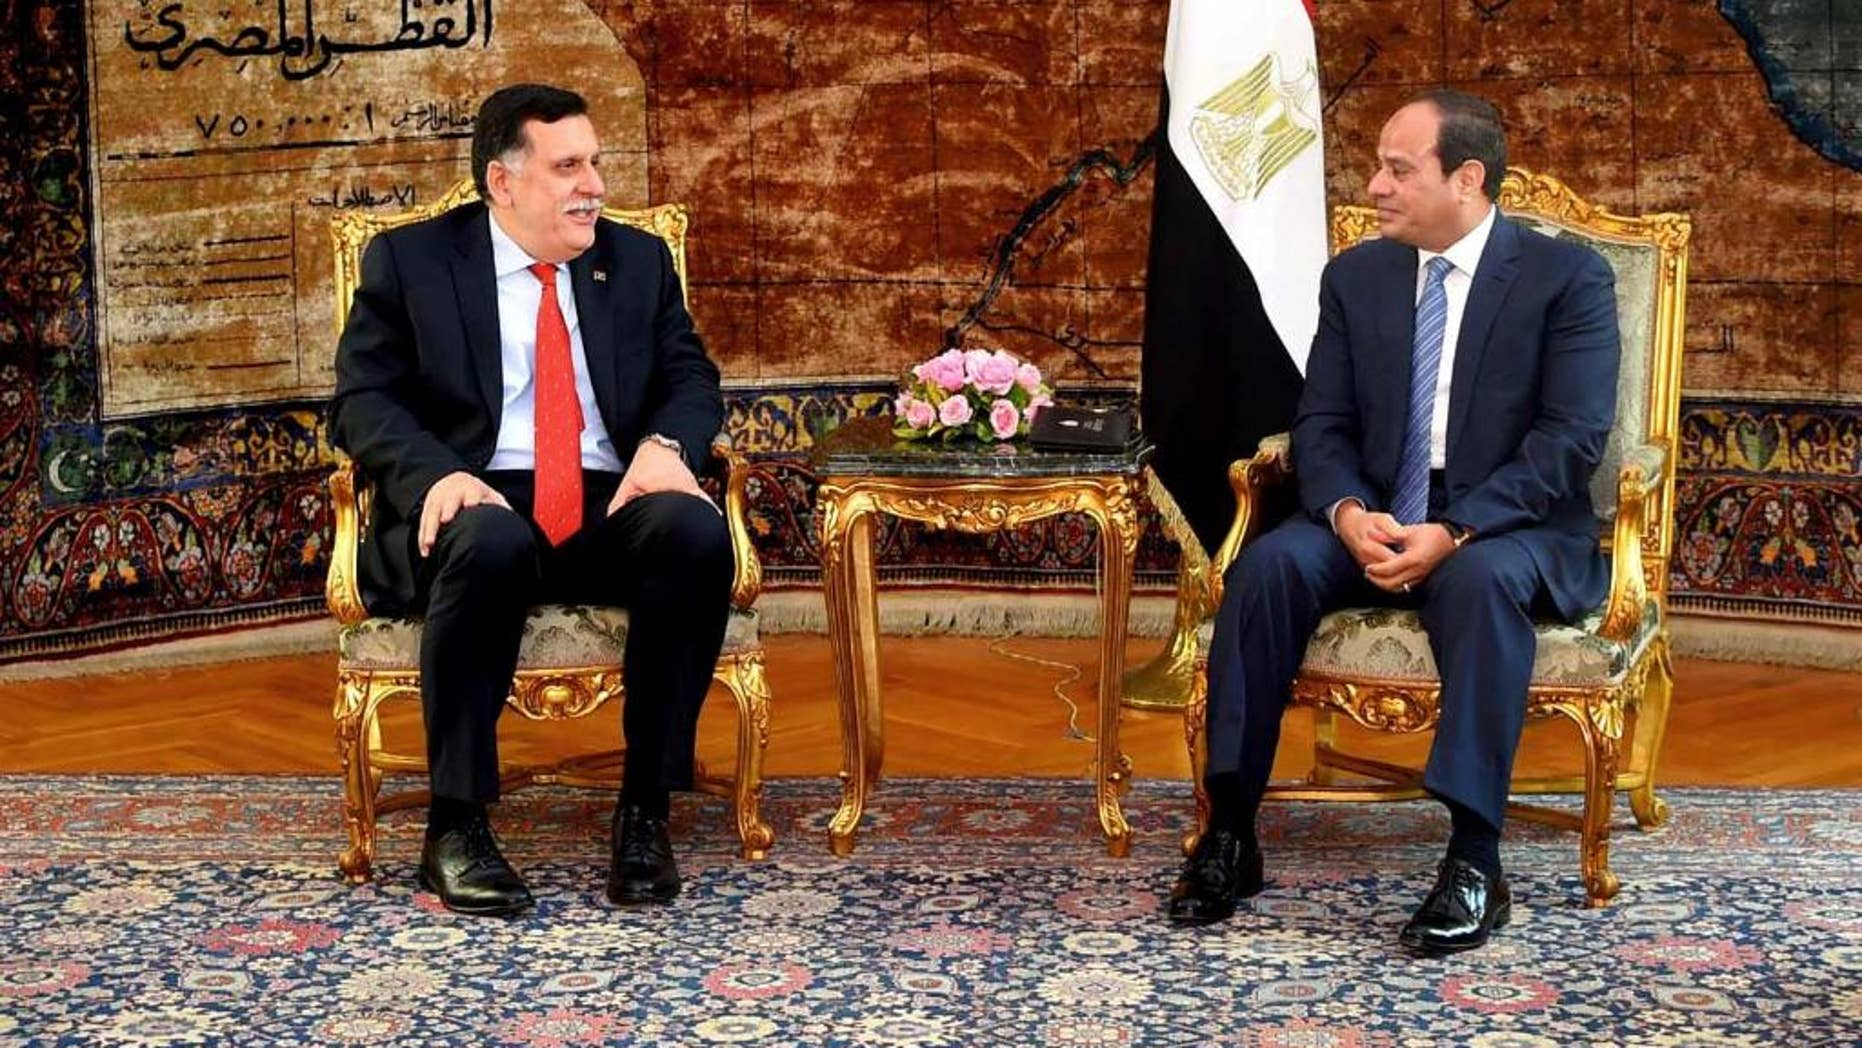 In this photo released by the Egyptian Presidency, Libyan Prime Minister Fayez al-Serraj, left, meets with Egyptian President Abdel-Fattah el-Sissi in Cairo, Egypt, Sunday, May 8, 2016. Libya's new prime minister called on the international community to help the country bolster its fight against terrorism on Sunday, urging the lifting an arms embargo and release of funds that remain frozen under U.N. sanctions. (Egyptian Presidency via AP)